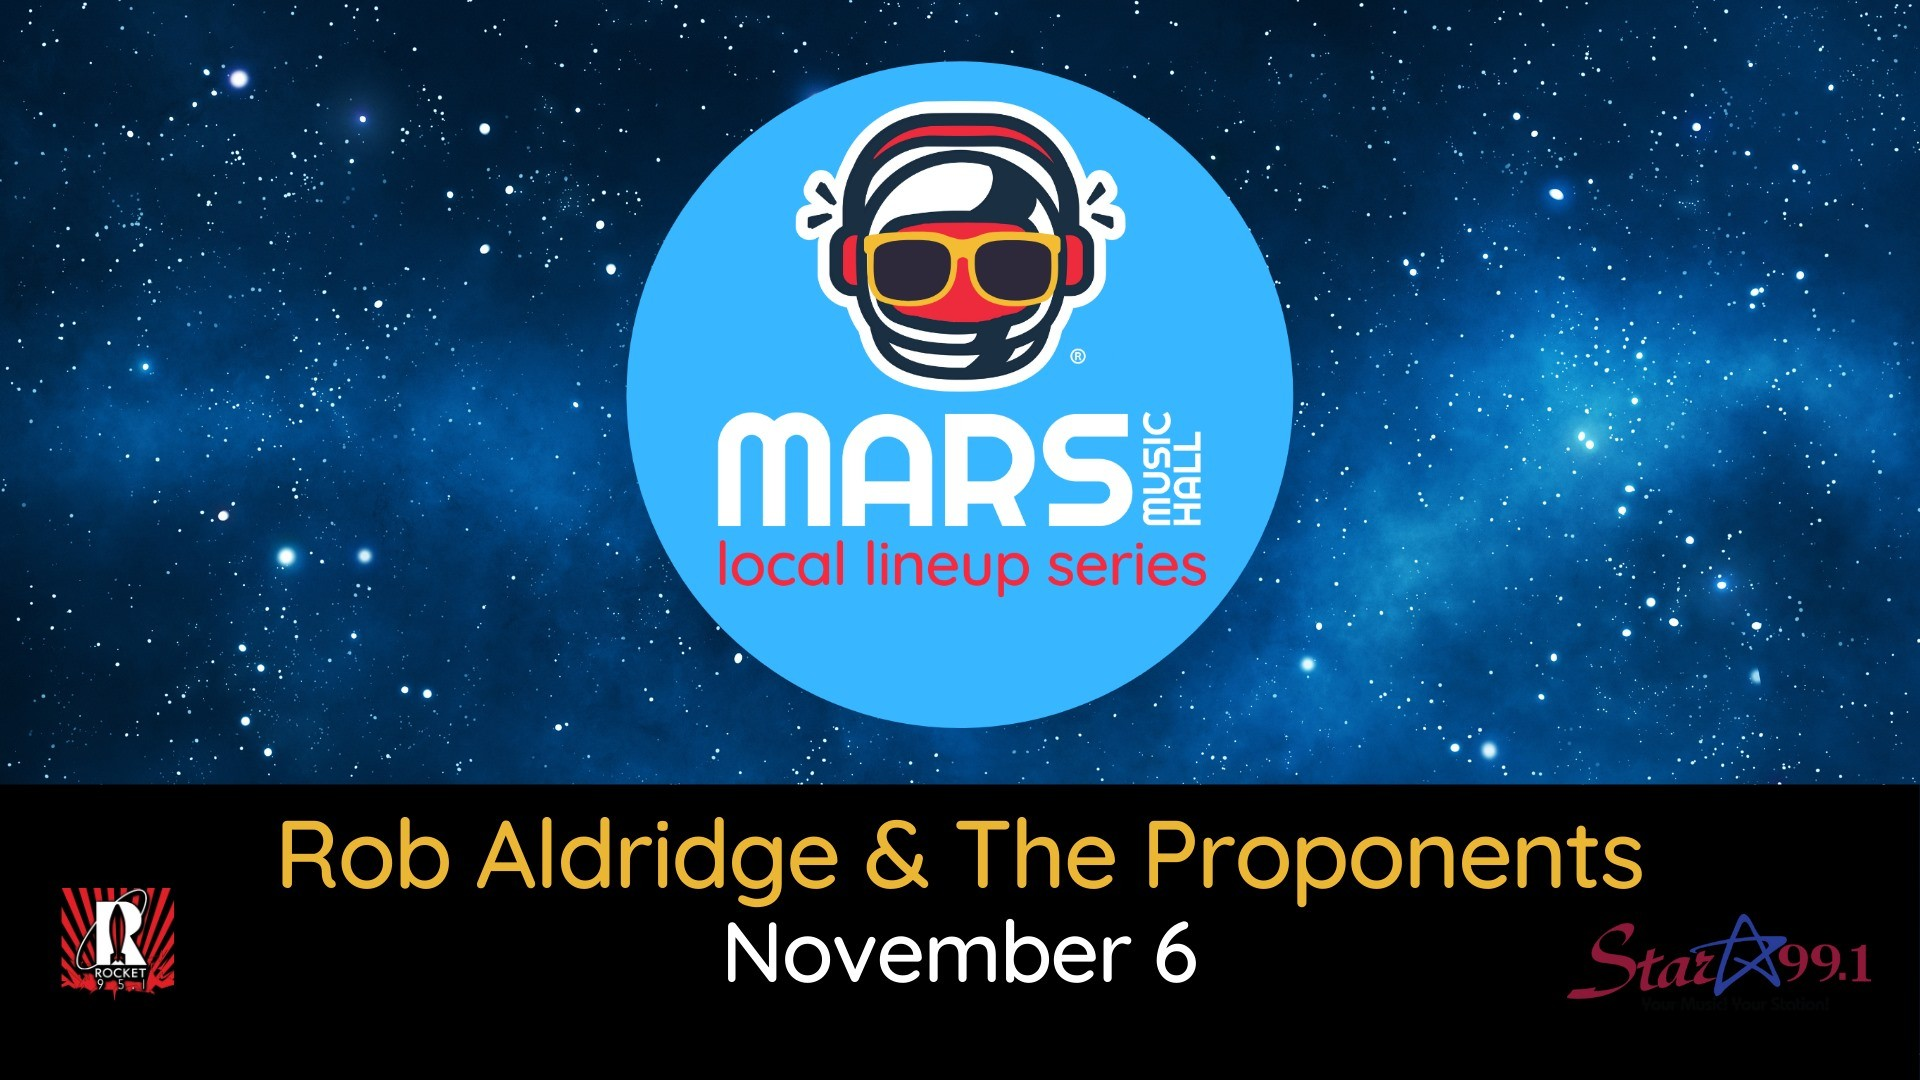 Rob Aldridge & the Proponents at Mars Music Hall